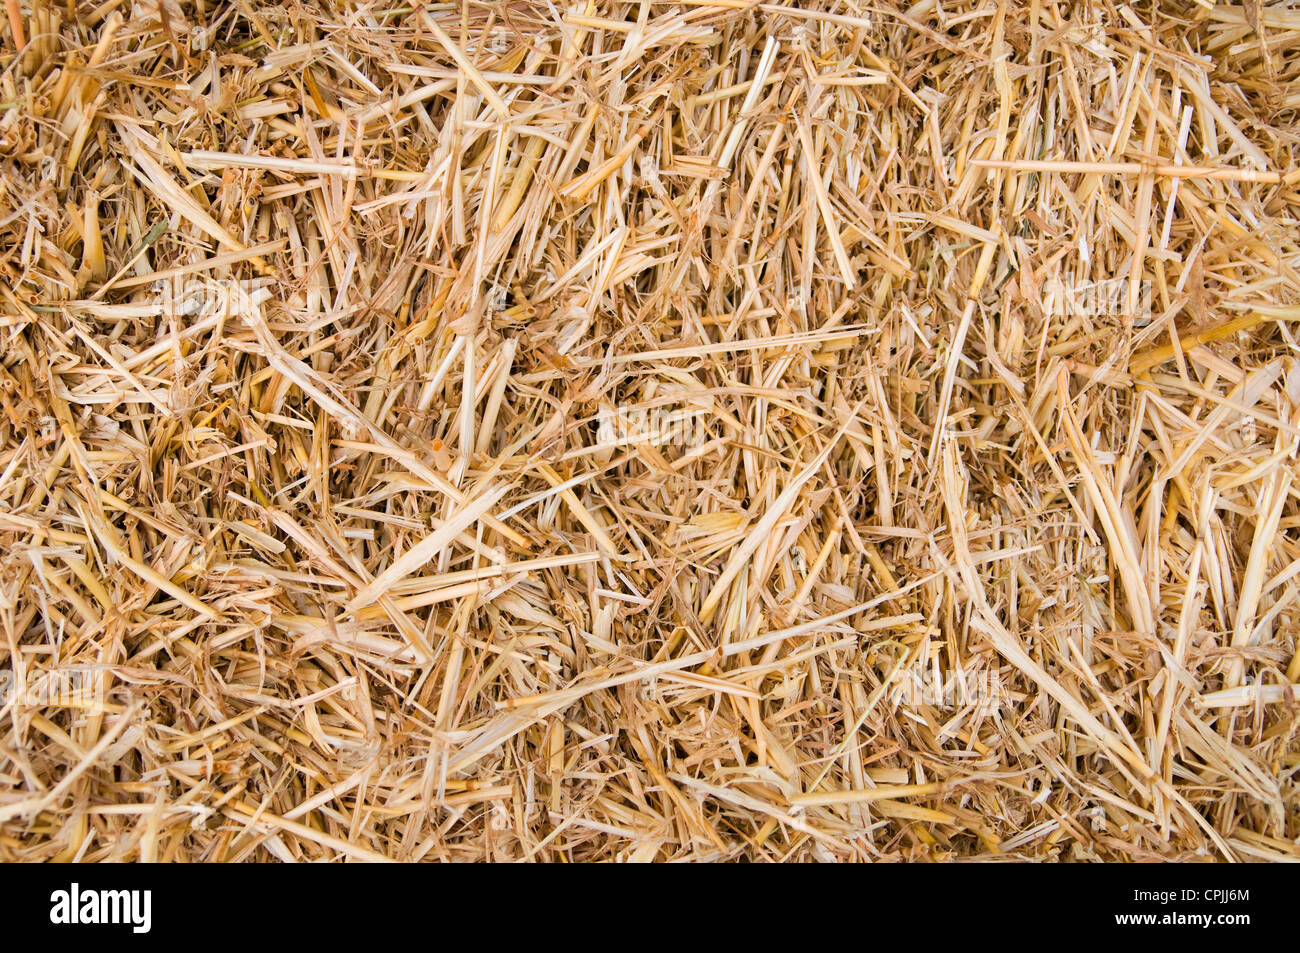 Golden straw texture background, close up - Stock Image